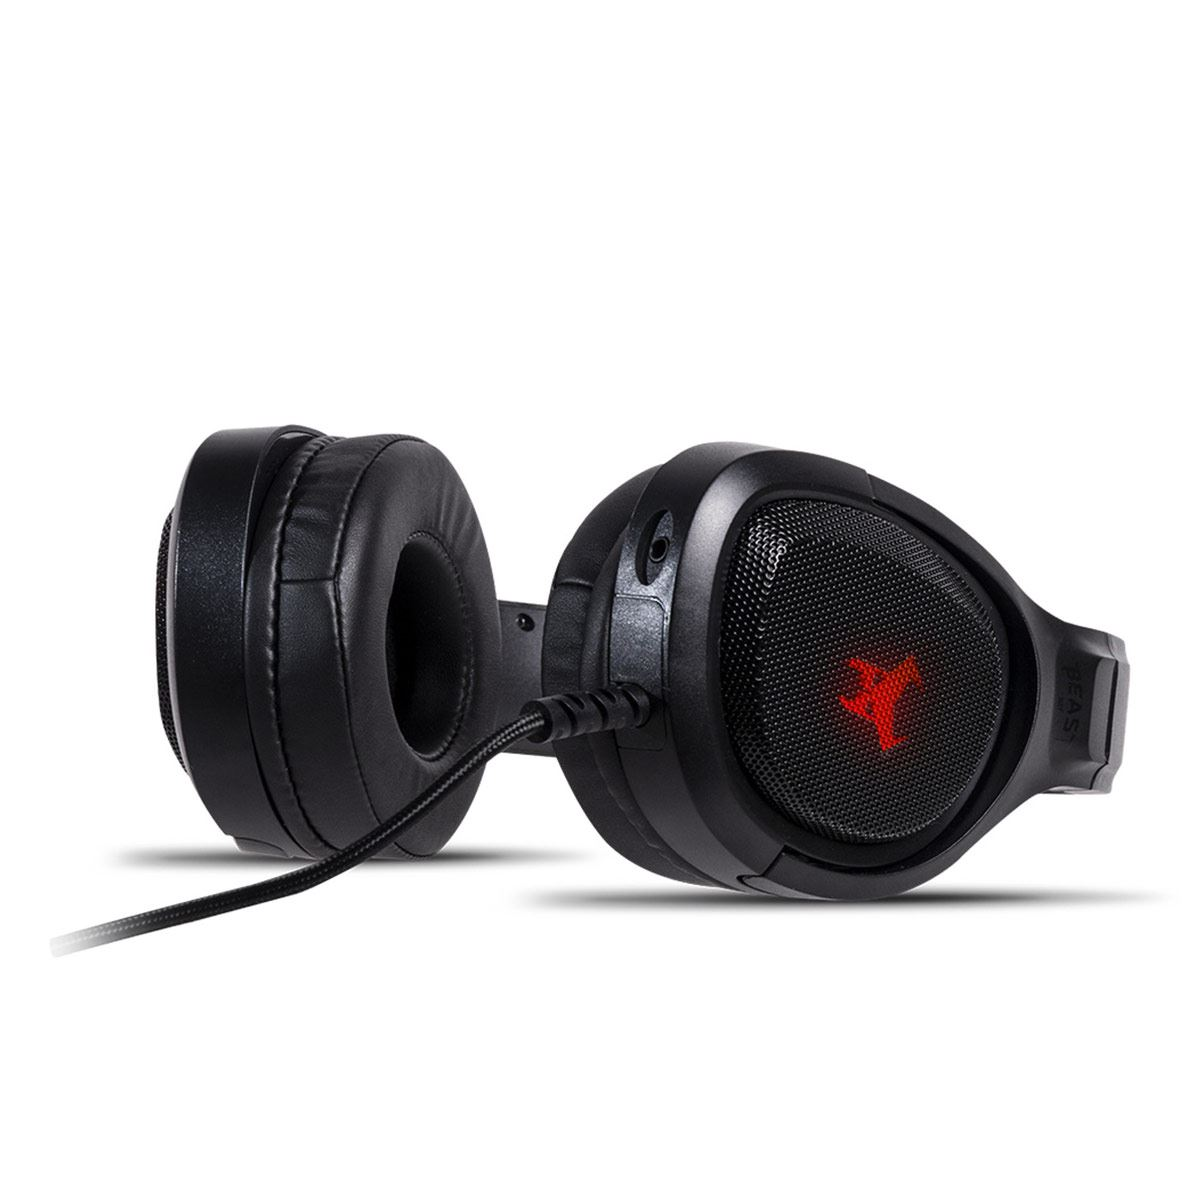 Audífonos Gaming Muspell Extreme 7.1 STF